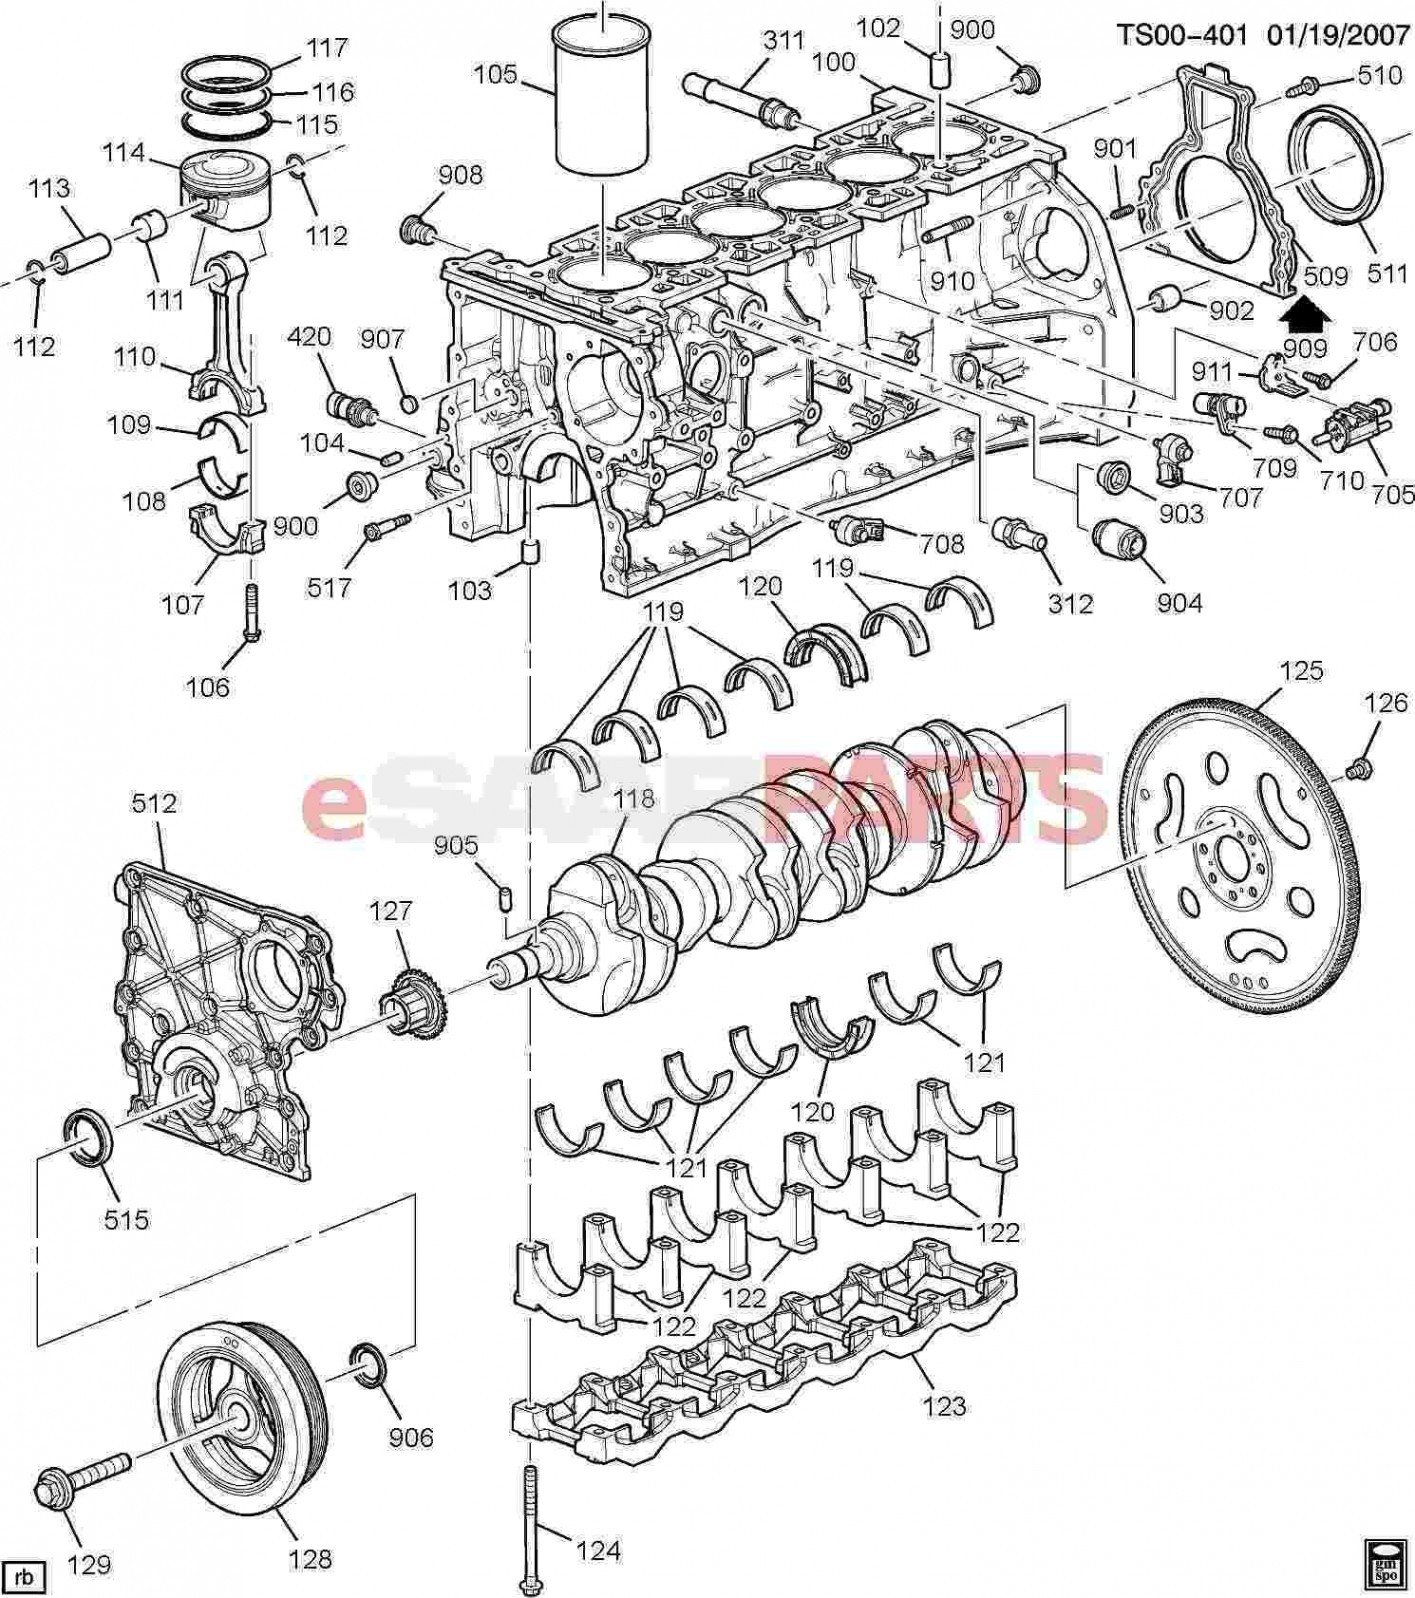 Auto Parts Diagram toyota toyota Parts Diagram – Auto Parts Diagram Manual ] Saab Plug M16x1 5 Of Auto Parts Diagram toyota Auto Transmission Diagram toyota Parts Catalog Beautiful Chevrolet